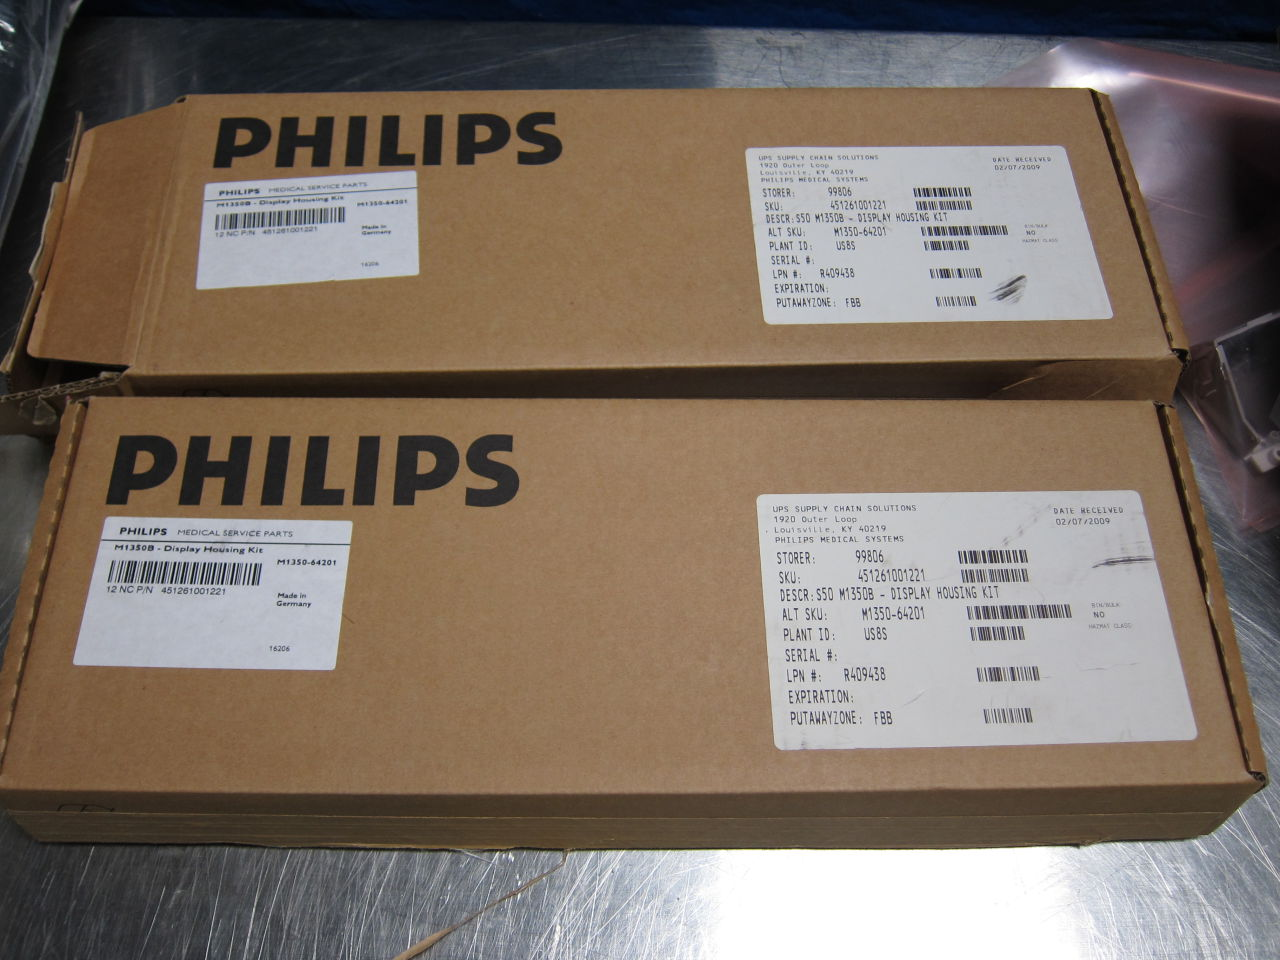 PHILIPS Various New in box replacement accessories - Lot of 5